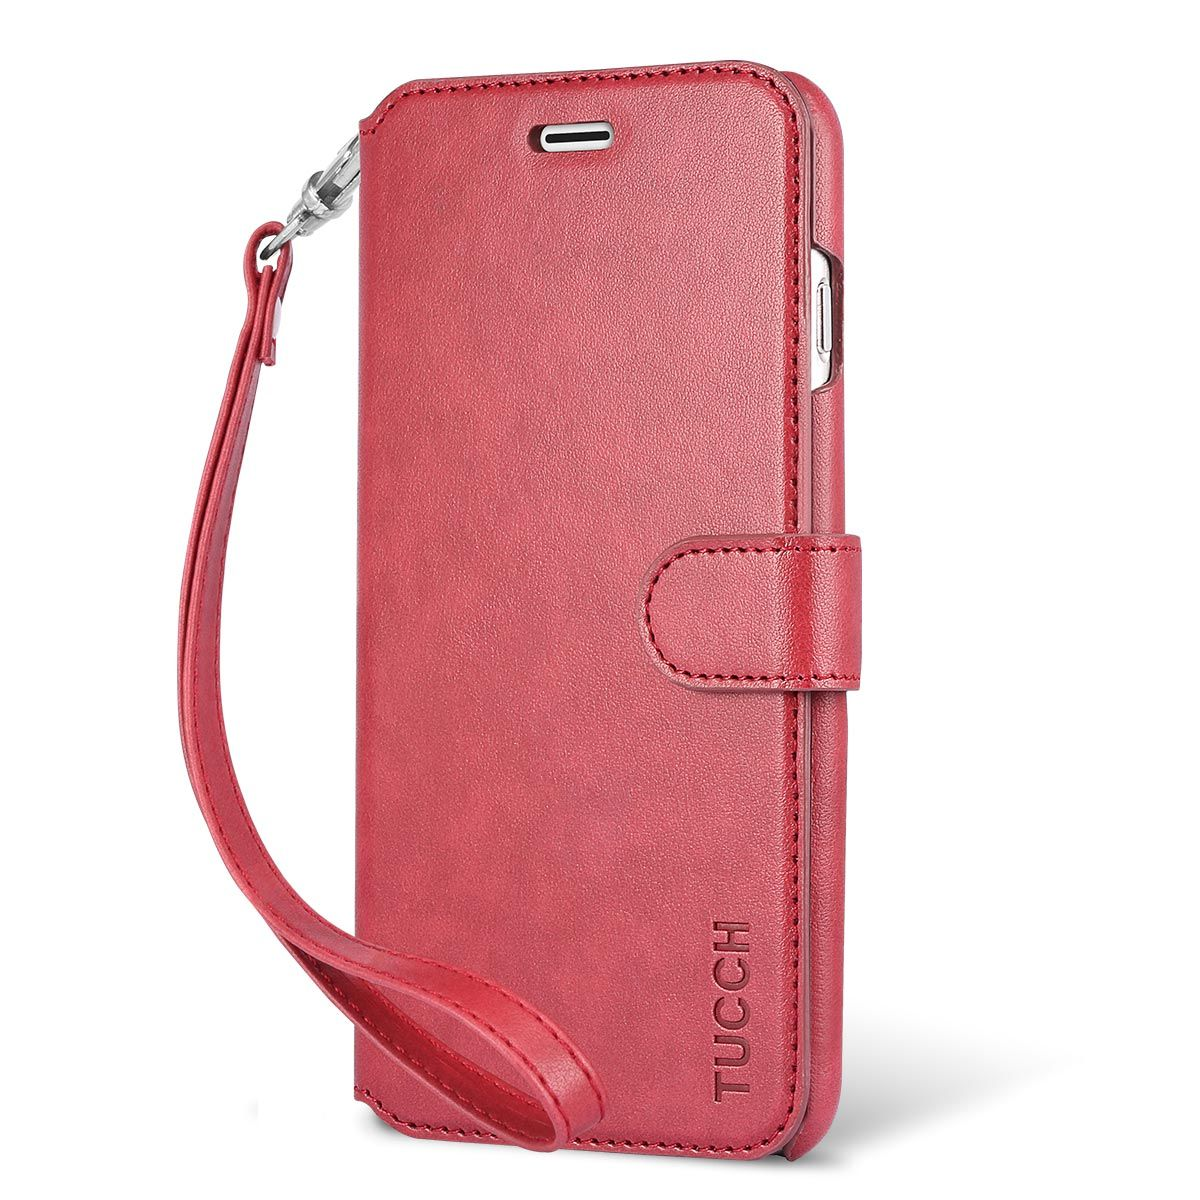 TUCCH iPhone 6S / 6 Plus PU Leather Book Case, Magnetic Closure, Wrist Strap